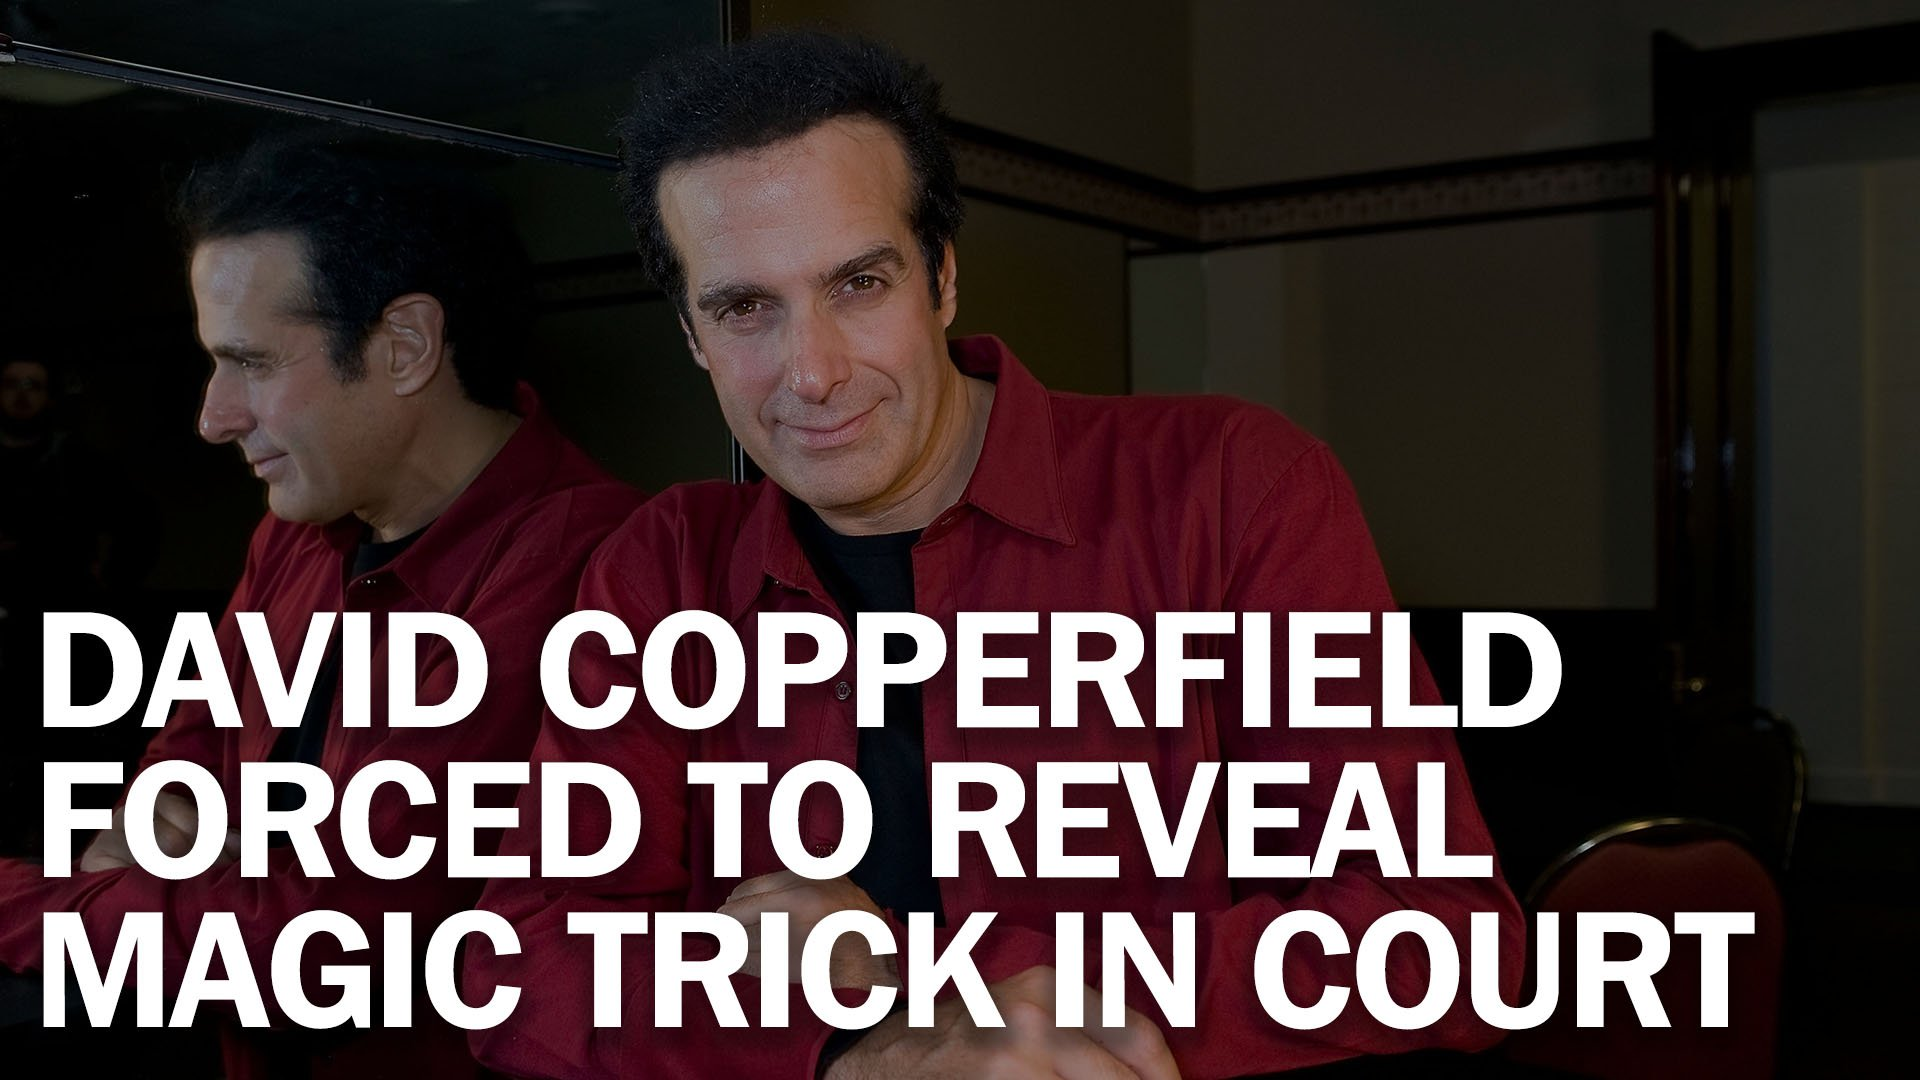 David Copperfield forced to break the magicians code in court https://t.co/rWGSJQuXgt https://t.co/0T3nNSqKj0